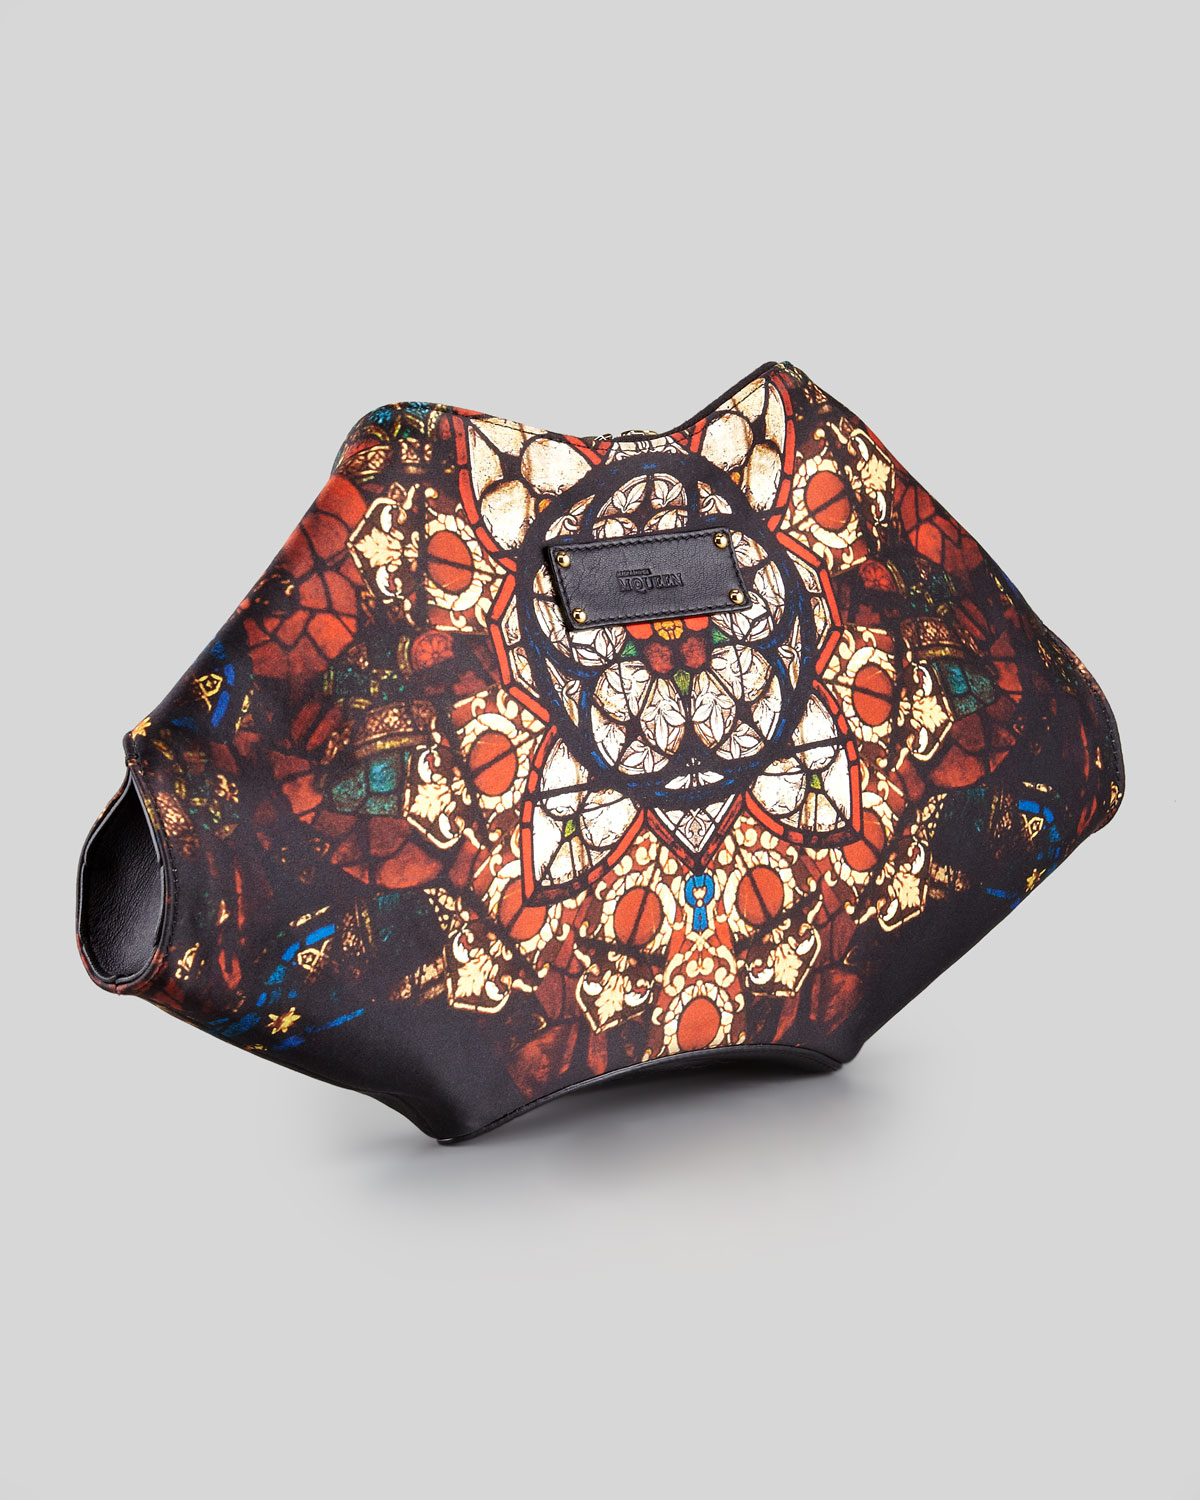 Alexander Mcqueen Demanta Stained Glass Printed Clutch Bag ...